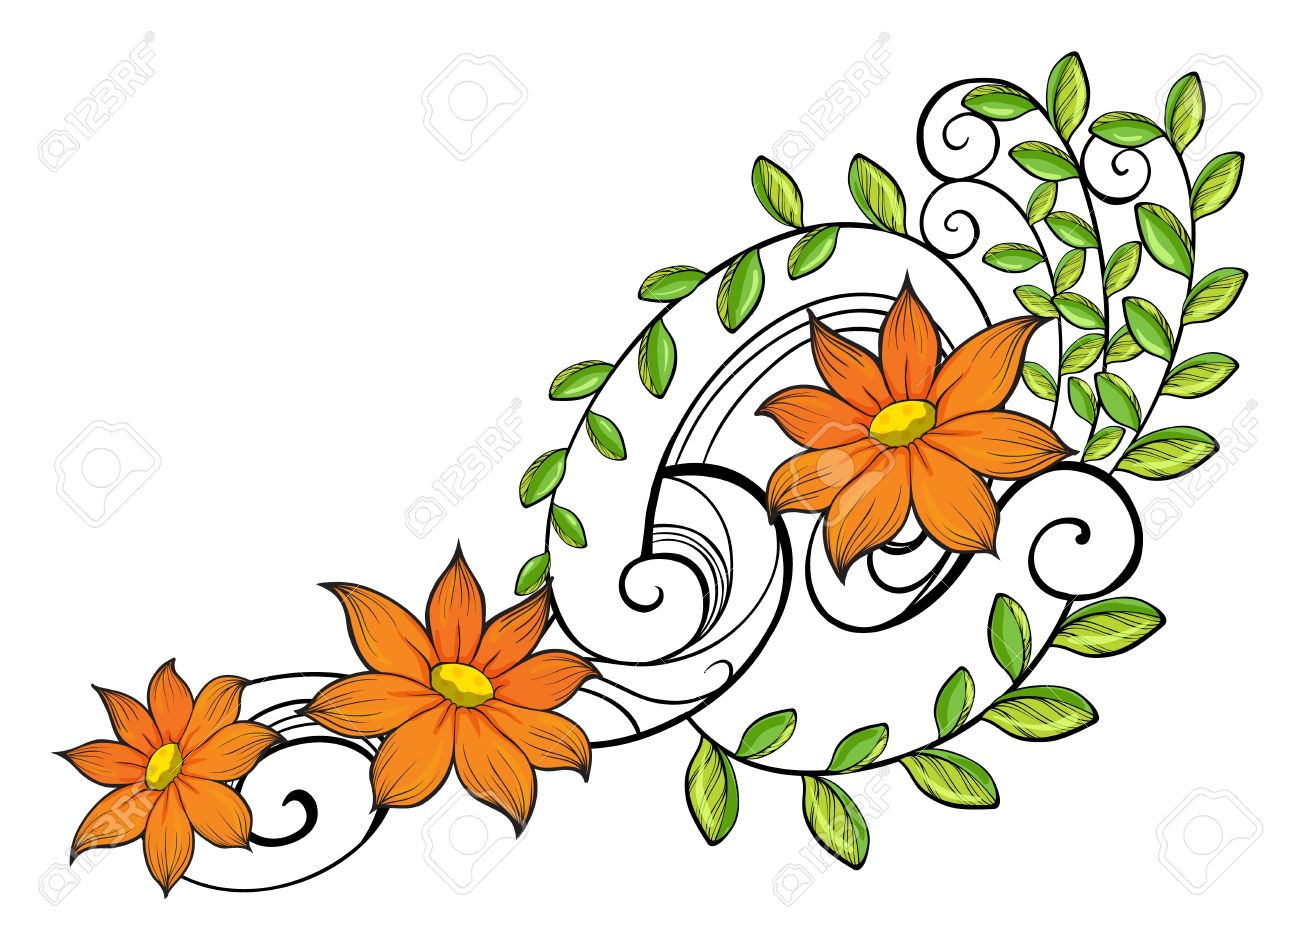 illustration of a border made of vine flowers on a white background rh 123rf com Snoopy Autumn Clip Art Autumn Background Clip Art